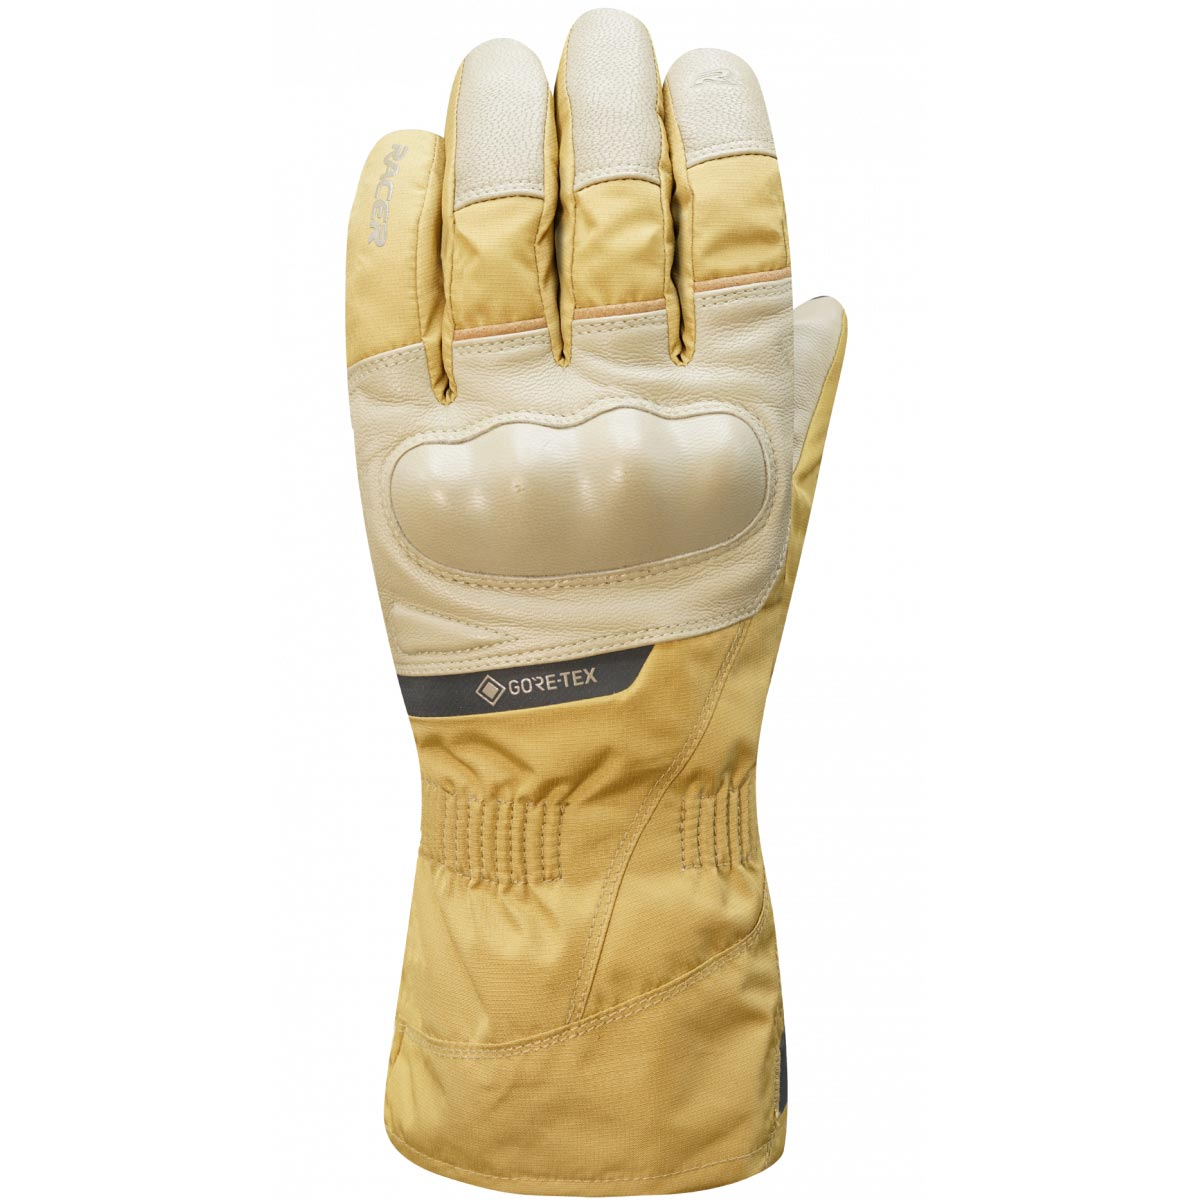 Racer Command GTX Gloves - Coyote Sand